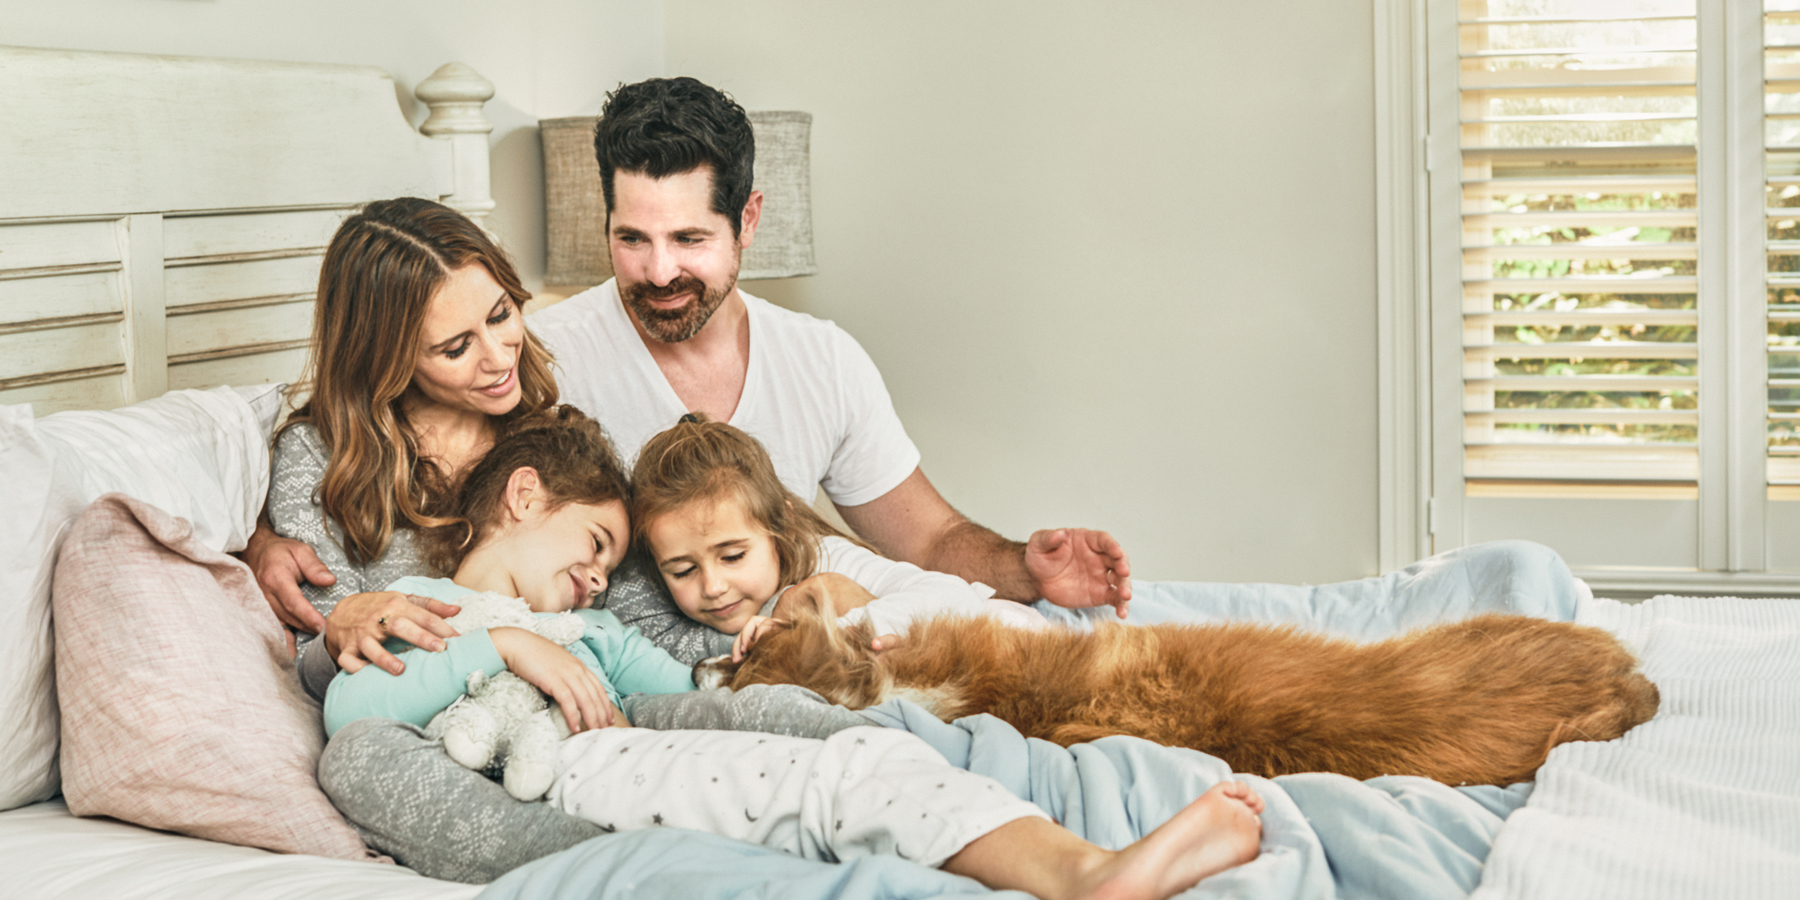 A husband and wife sitting on a bed holding their two daughters as they pet their dog